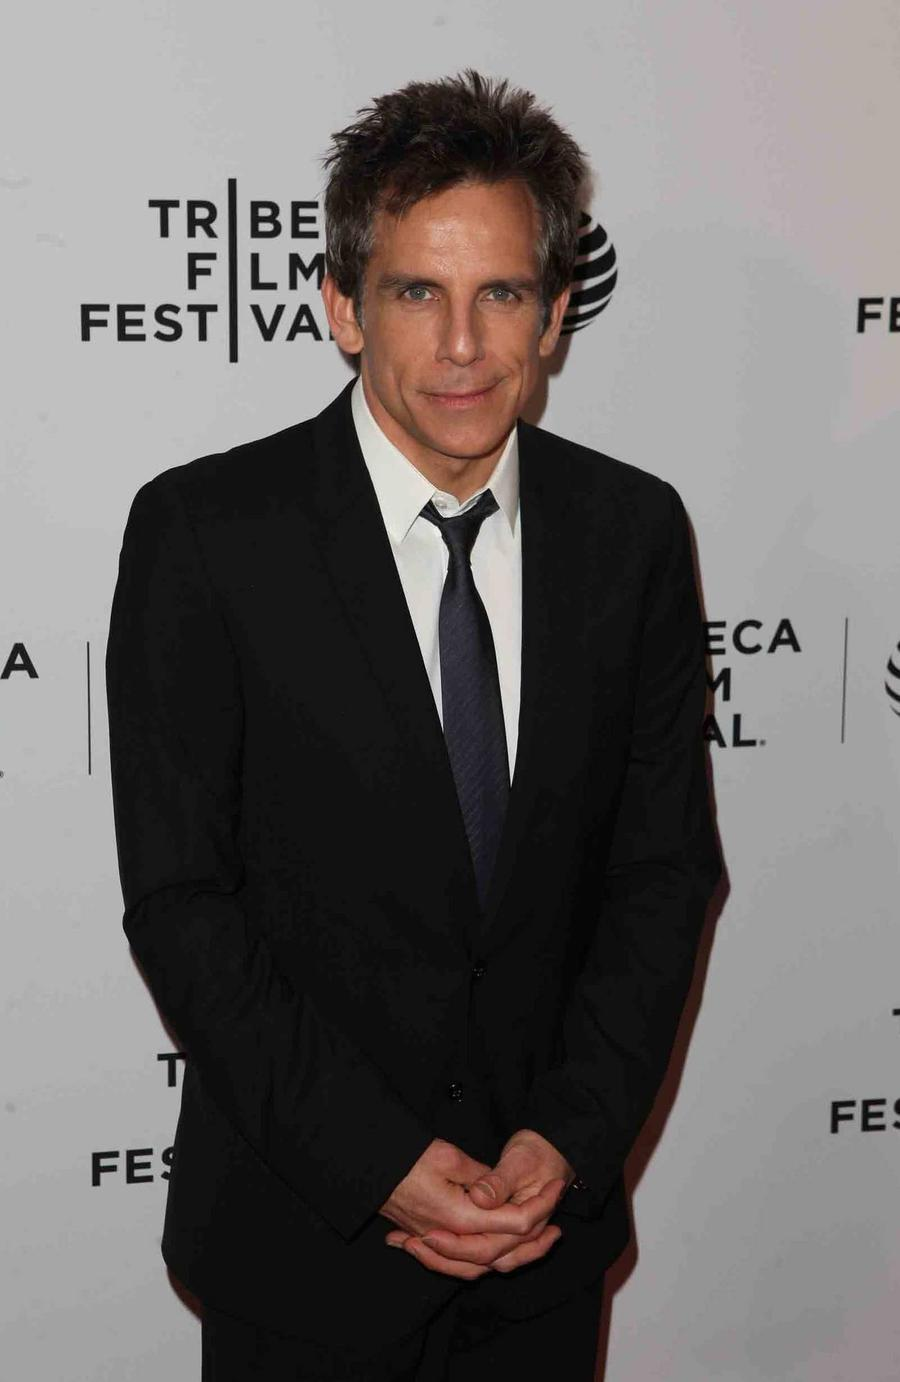 Ben Stiller 'Fortunate' To Have Beaten Cancer